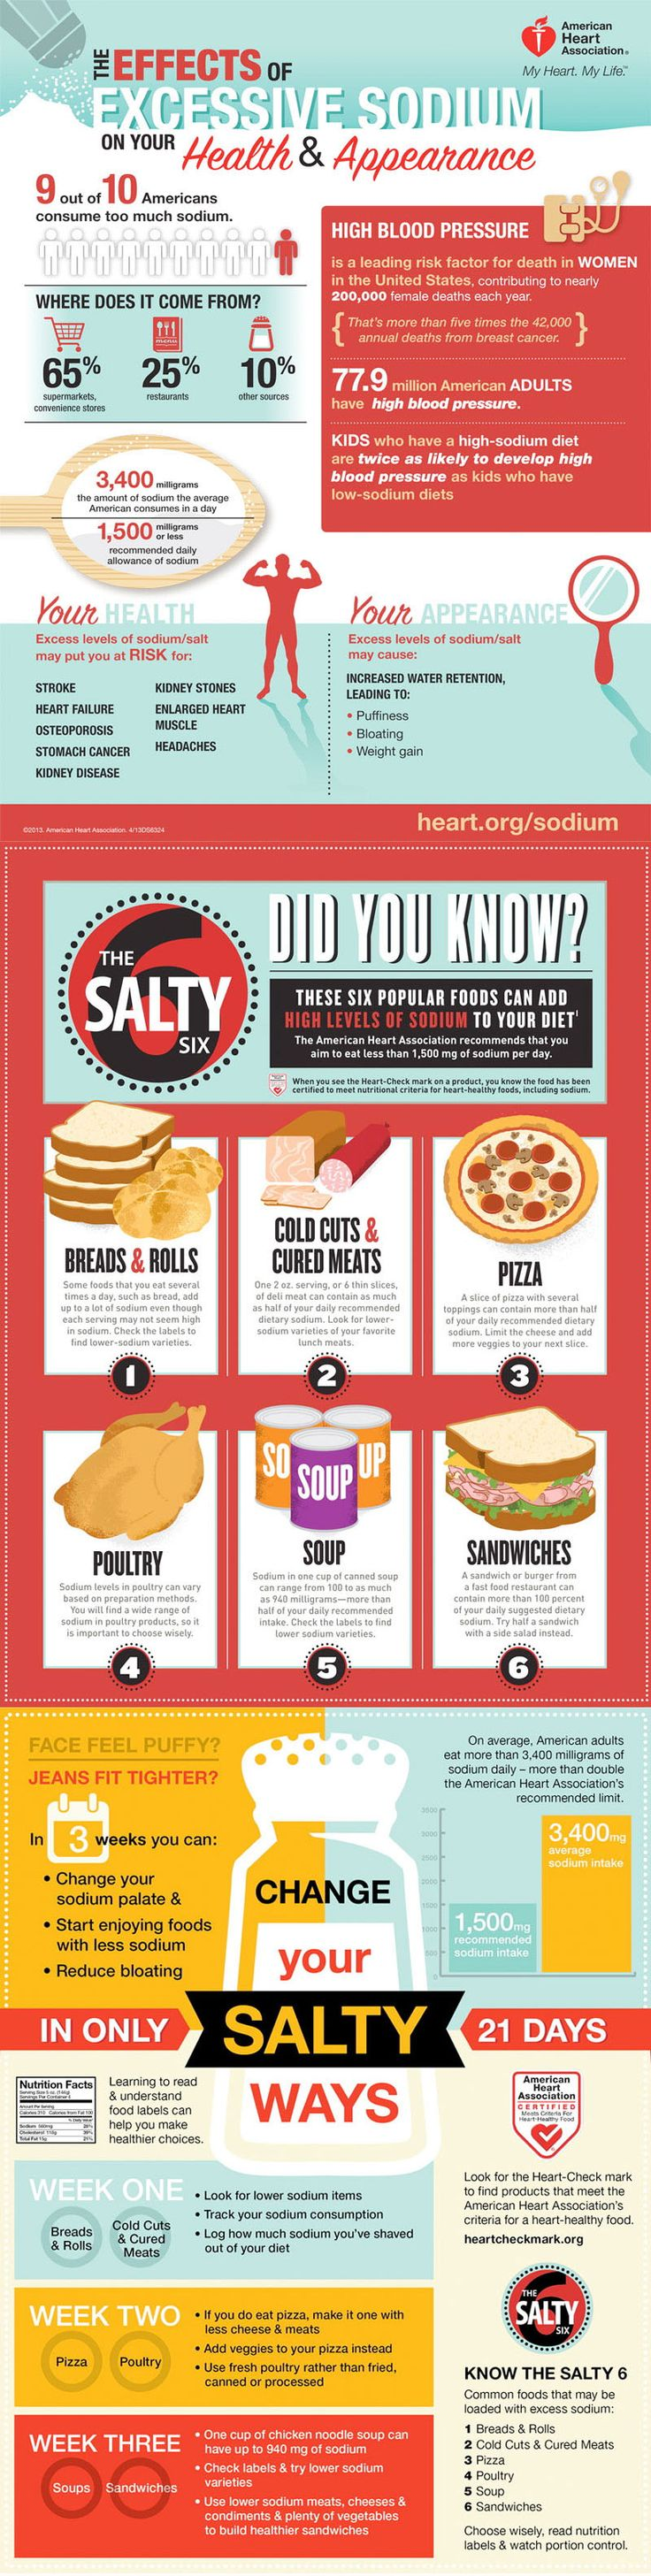 Excessive Sodium: How Much Is Too Much? Infographic